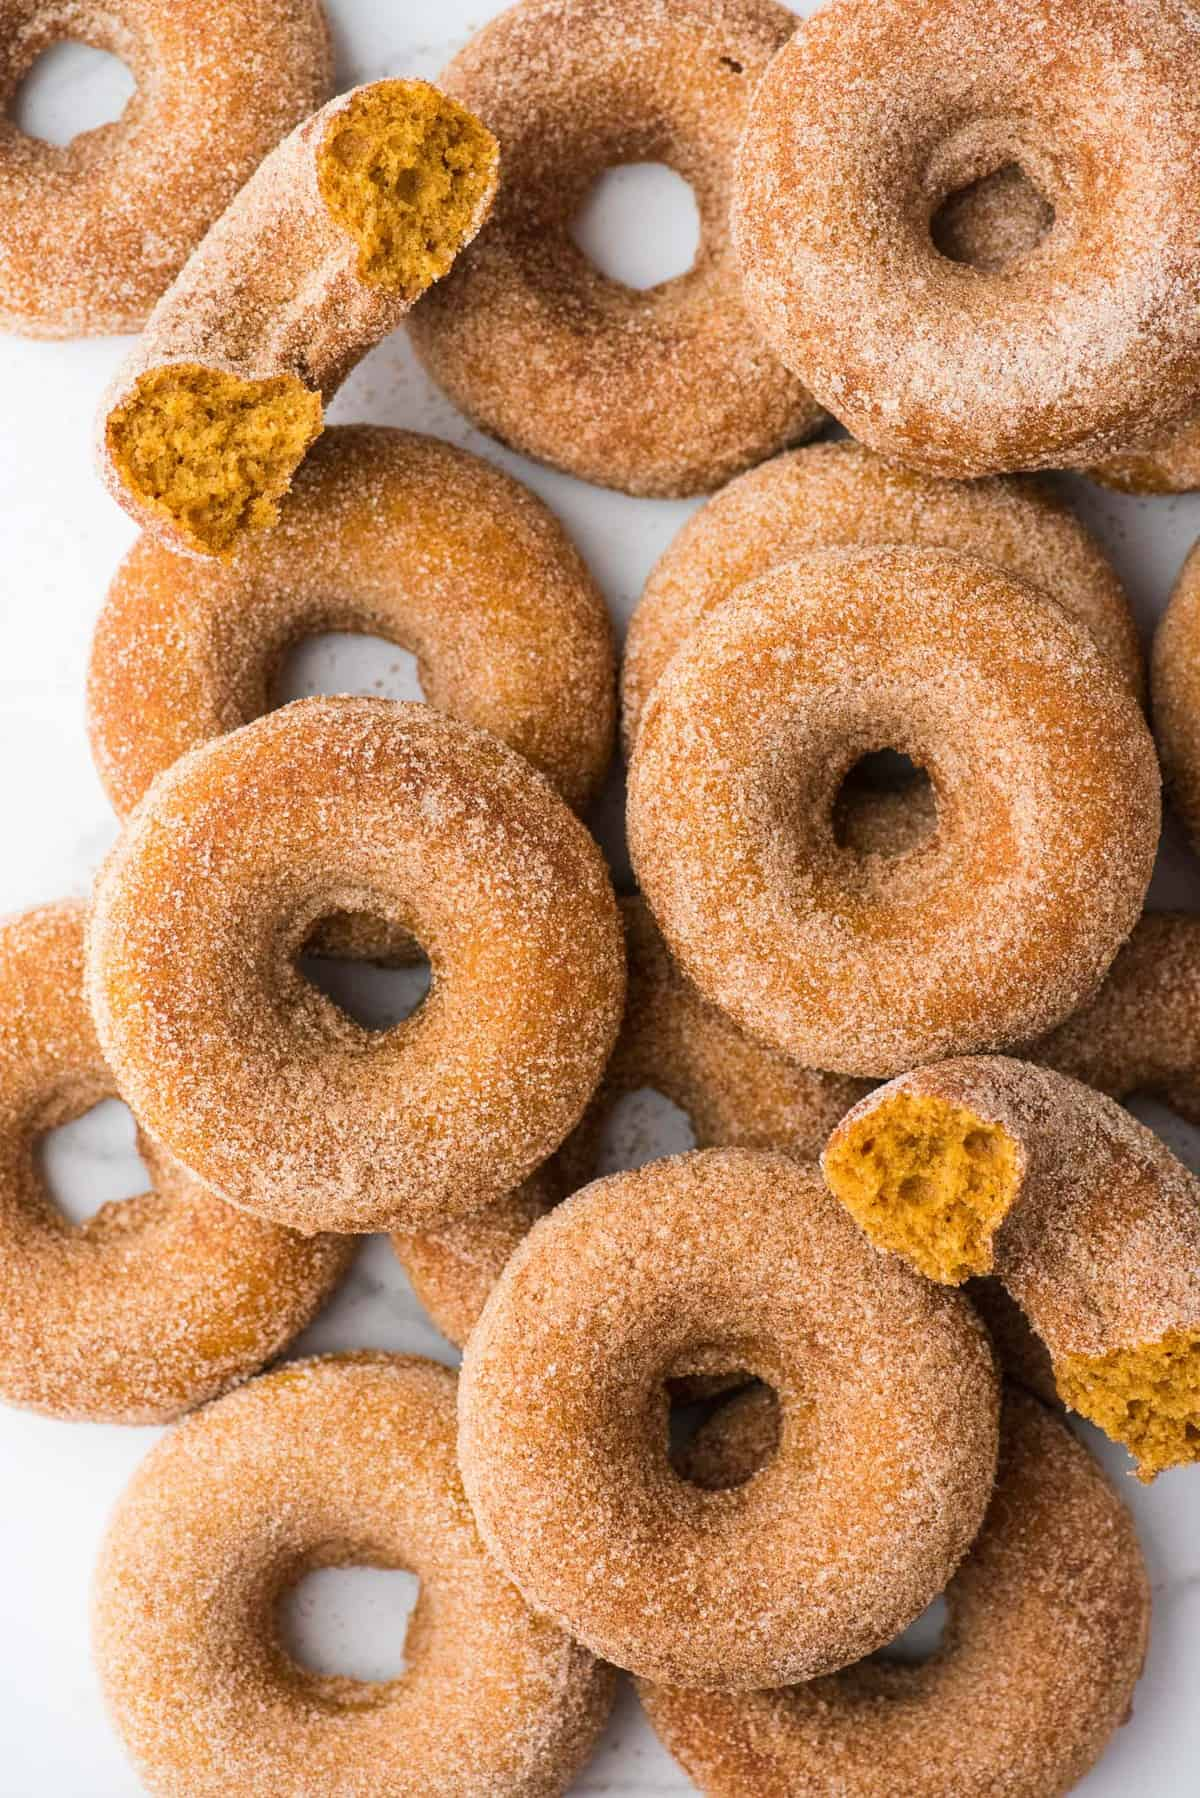 pumpkin donuts arranged in a pile on a white background